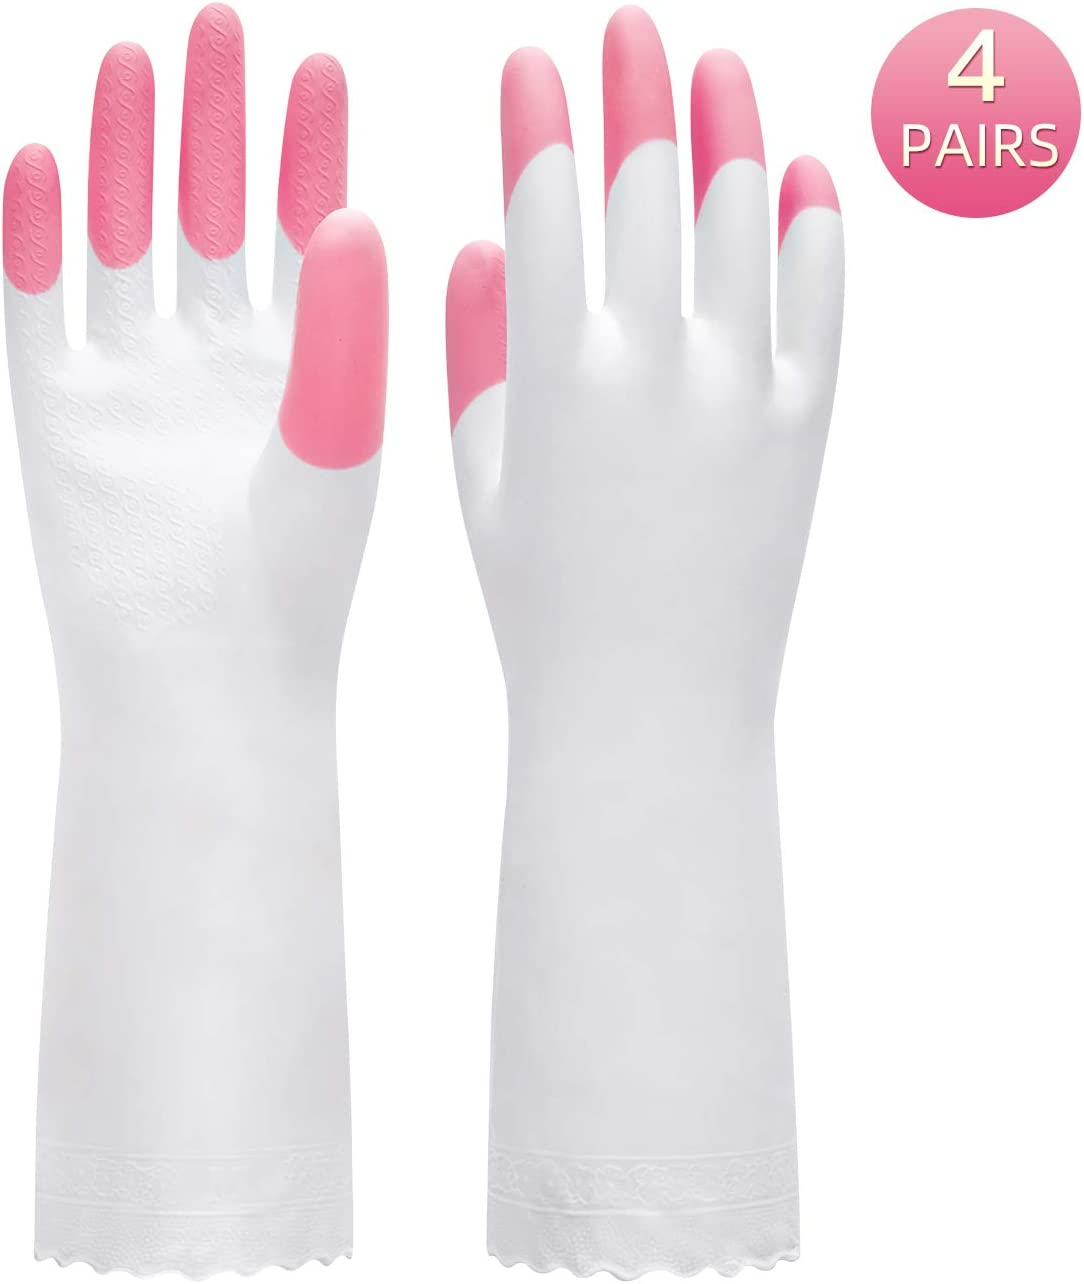 Pacific PPE 4Pairs Cleaning Glove Reusable Household Dishwashing Gloves-Latex Free Waterproof PVC Gloves for Kitchen,Gardening Gloves Unlined(Pink,M).